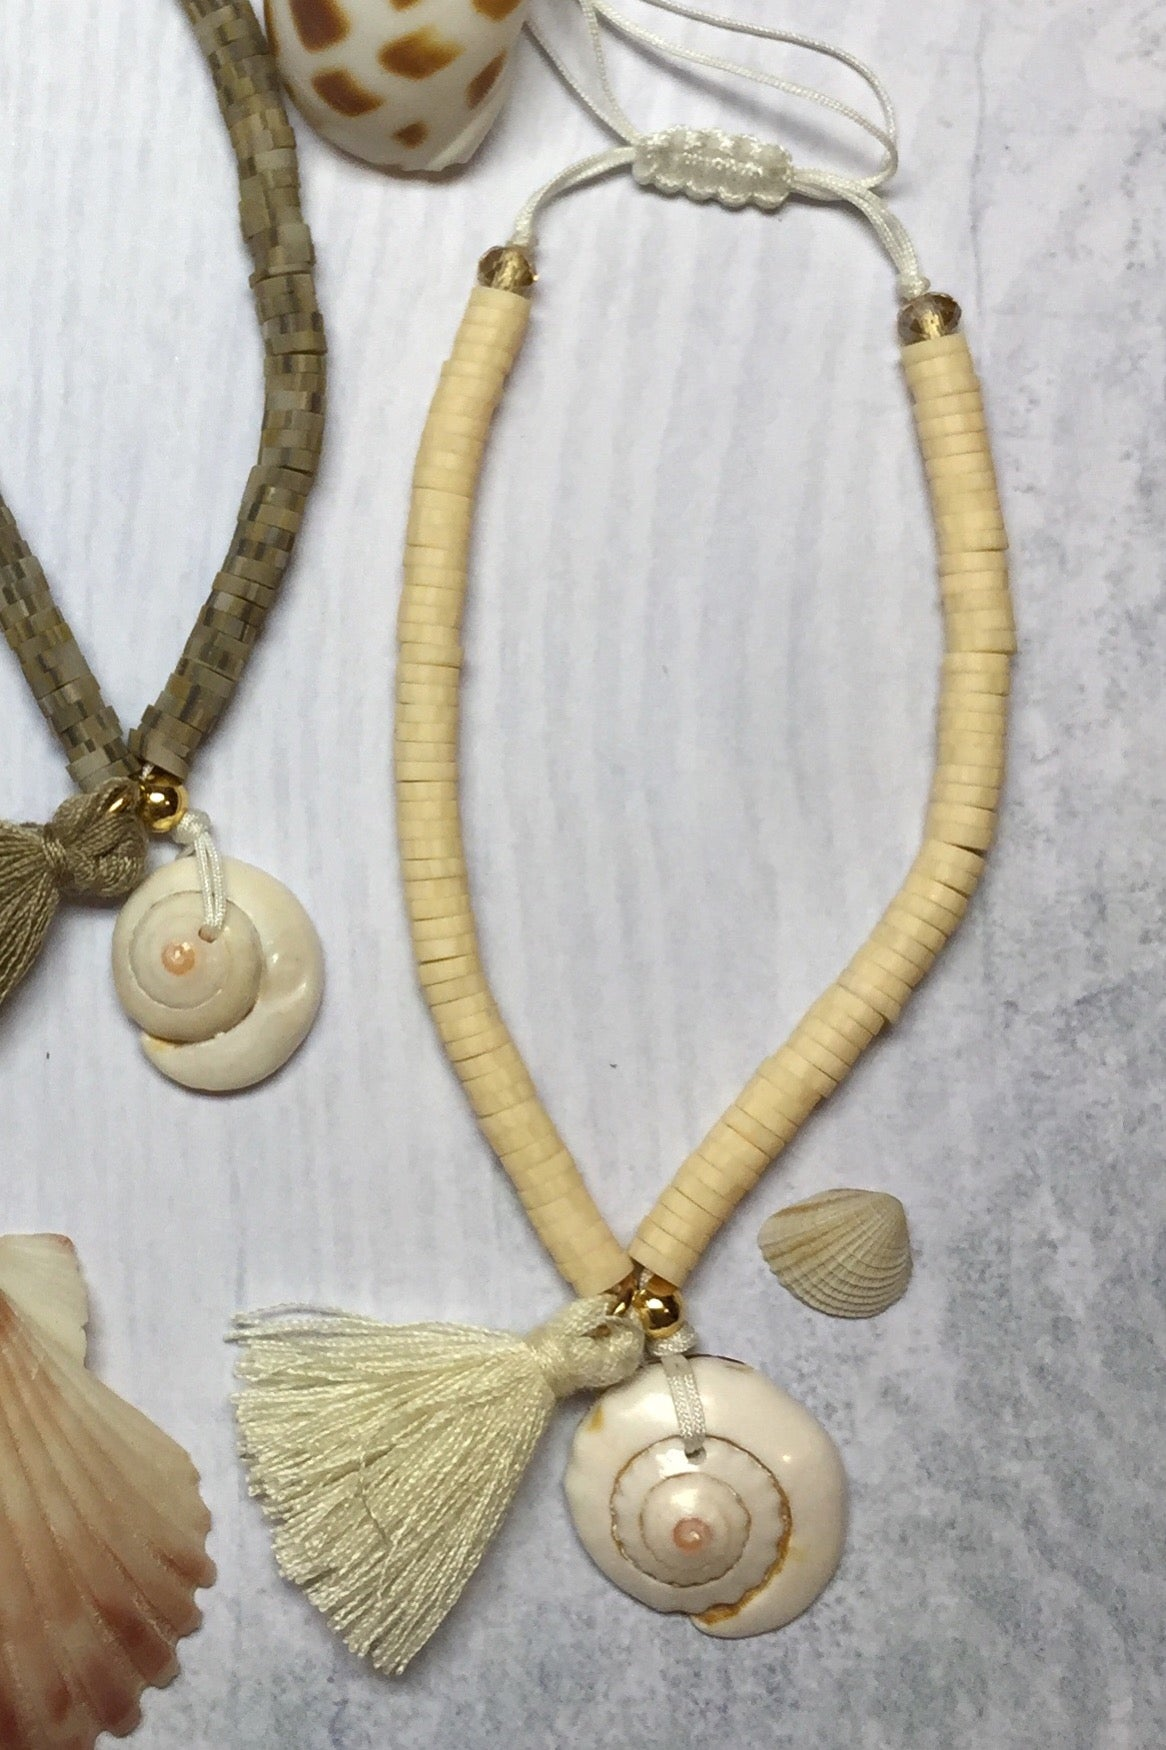 Beach Bracelet with Shell Detail in Natural or Beige